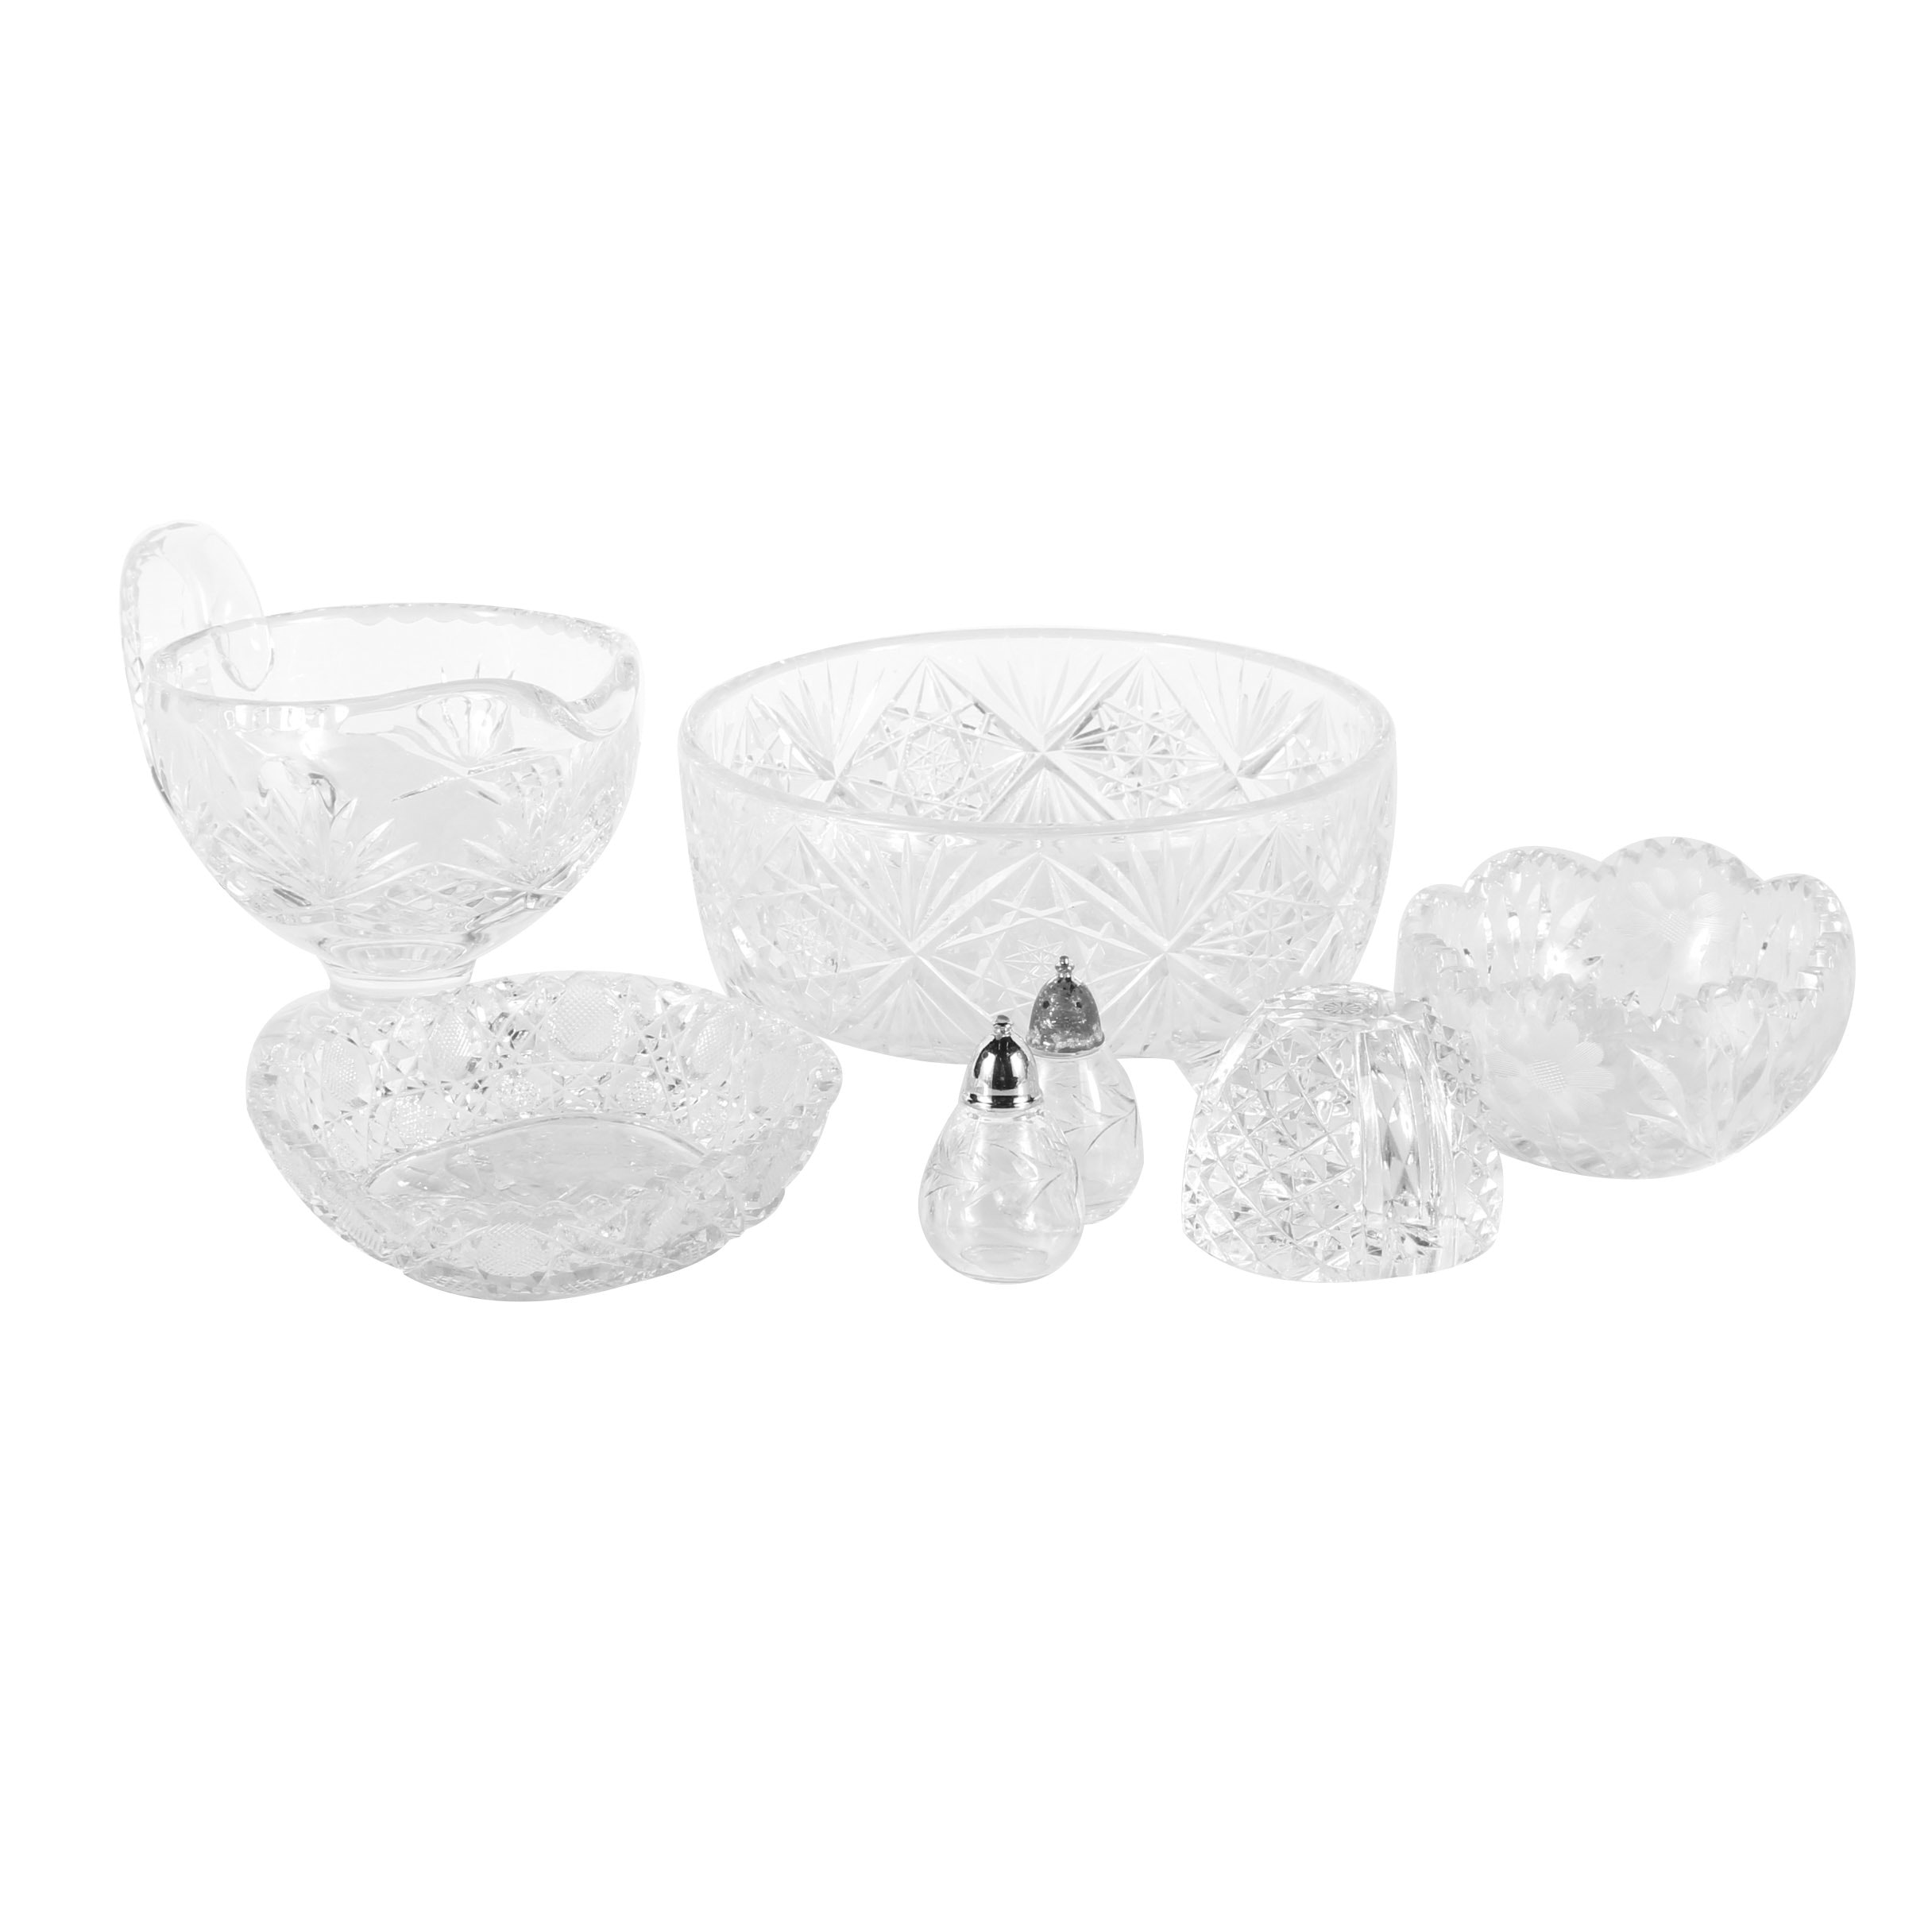 Pressed Glass Table Ware